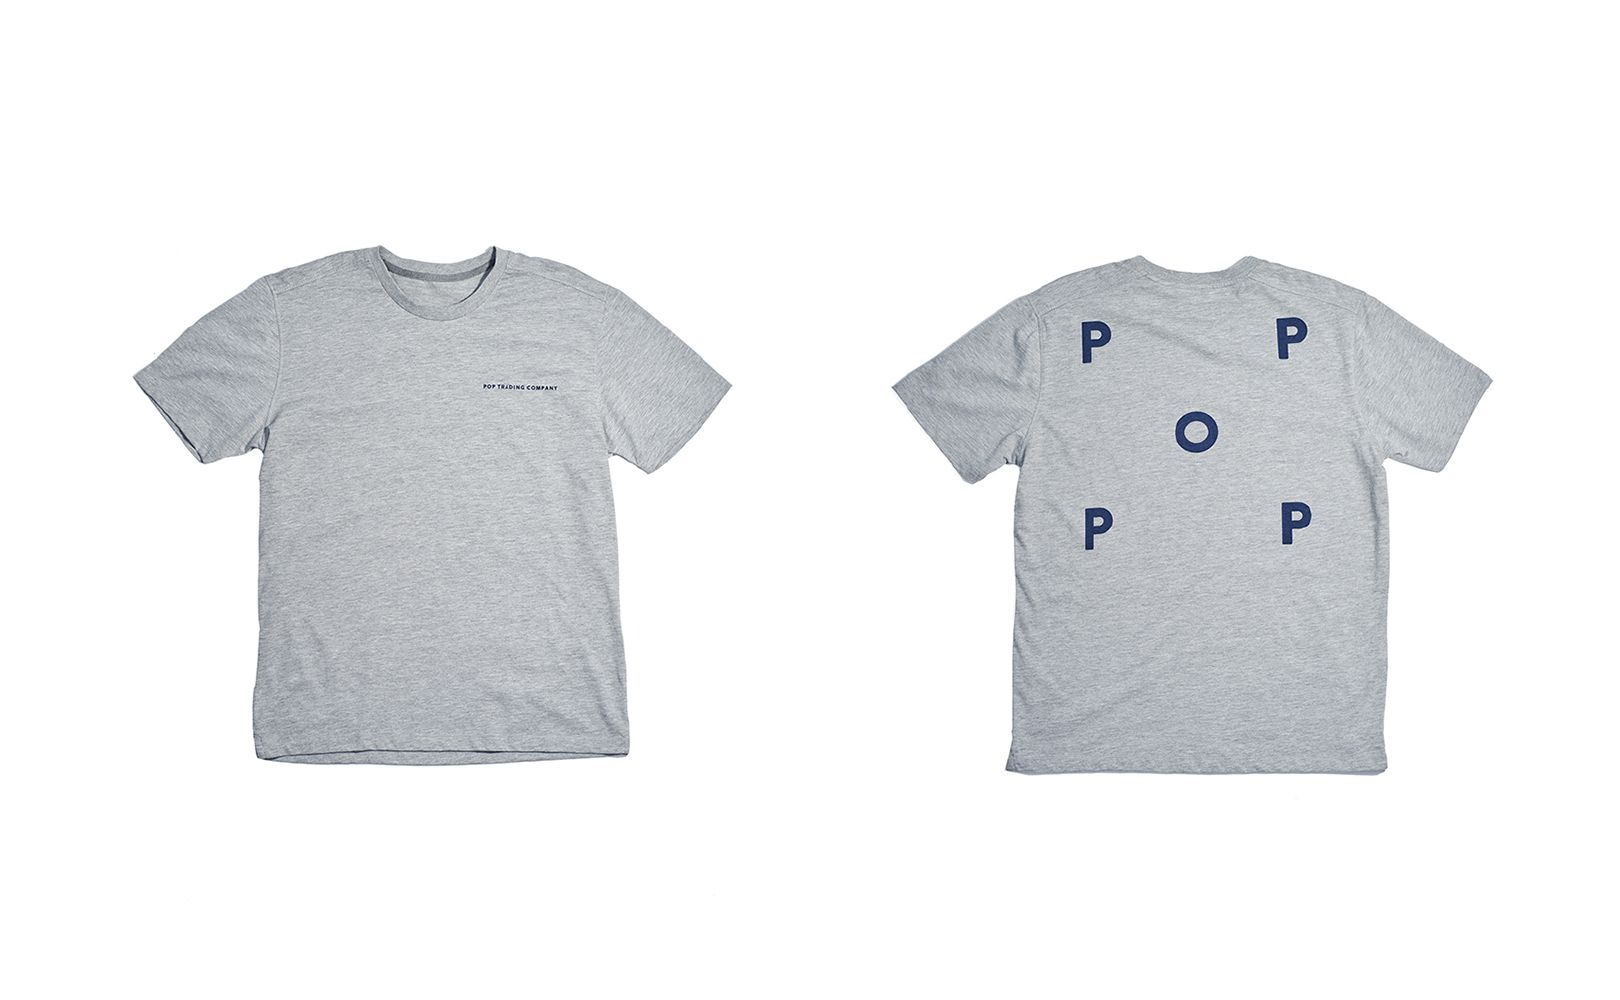 pop-trading-company-aw17-product-6-logo-t-shirt-grey-navy